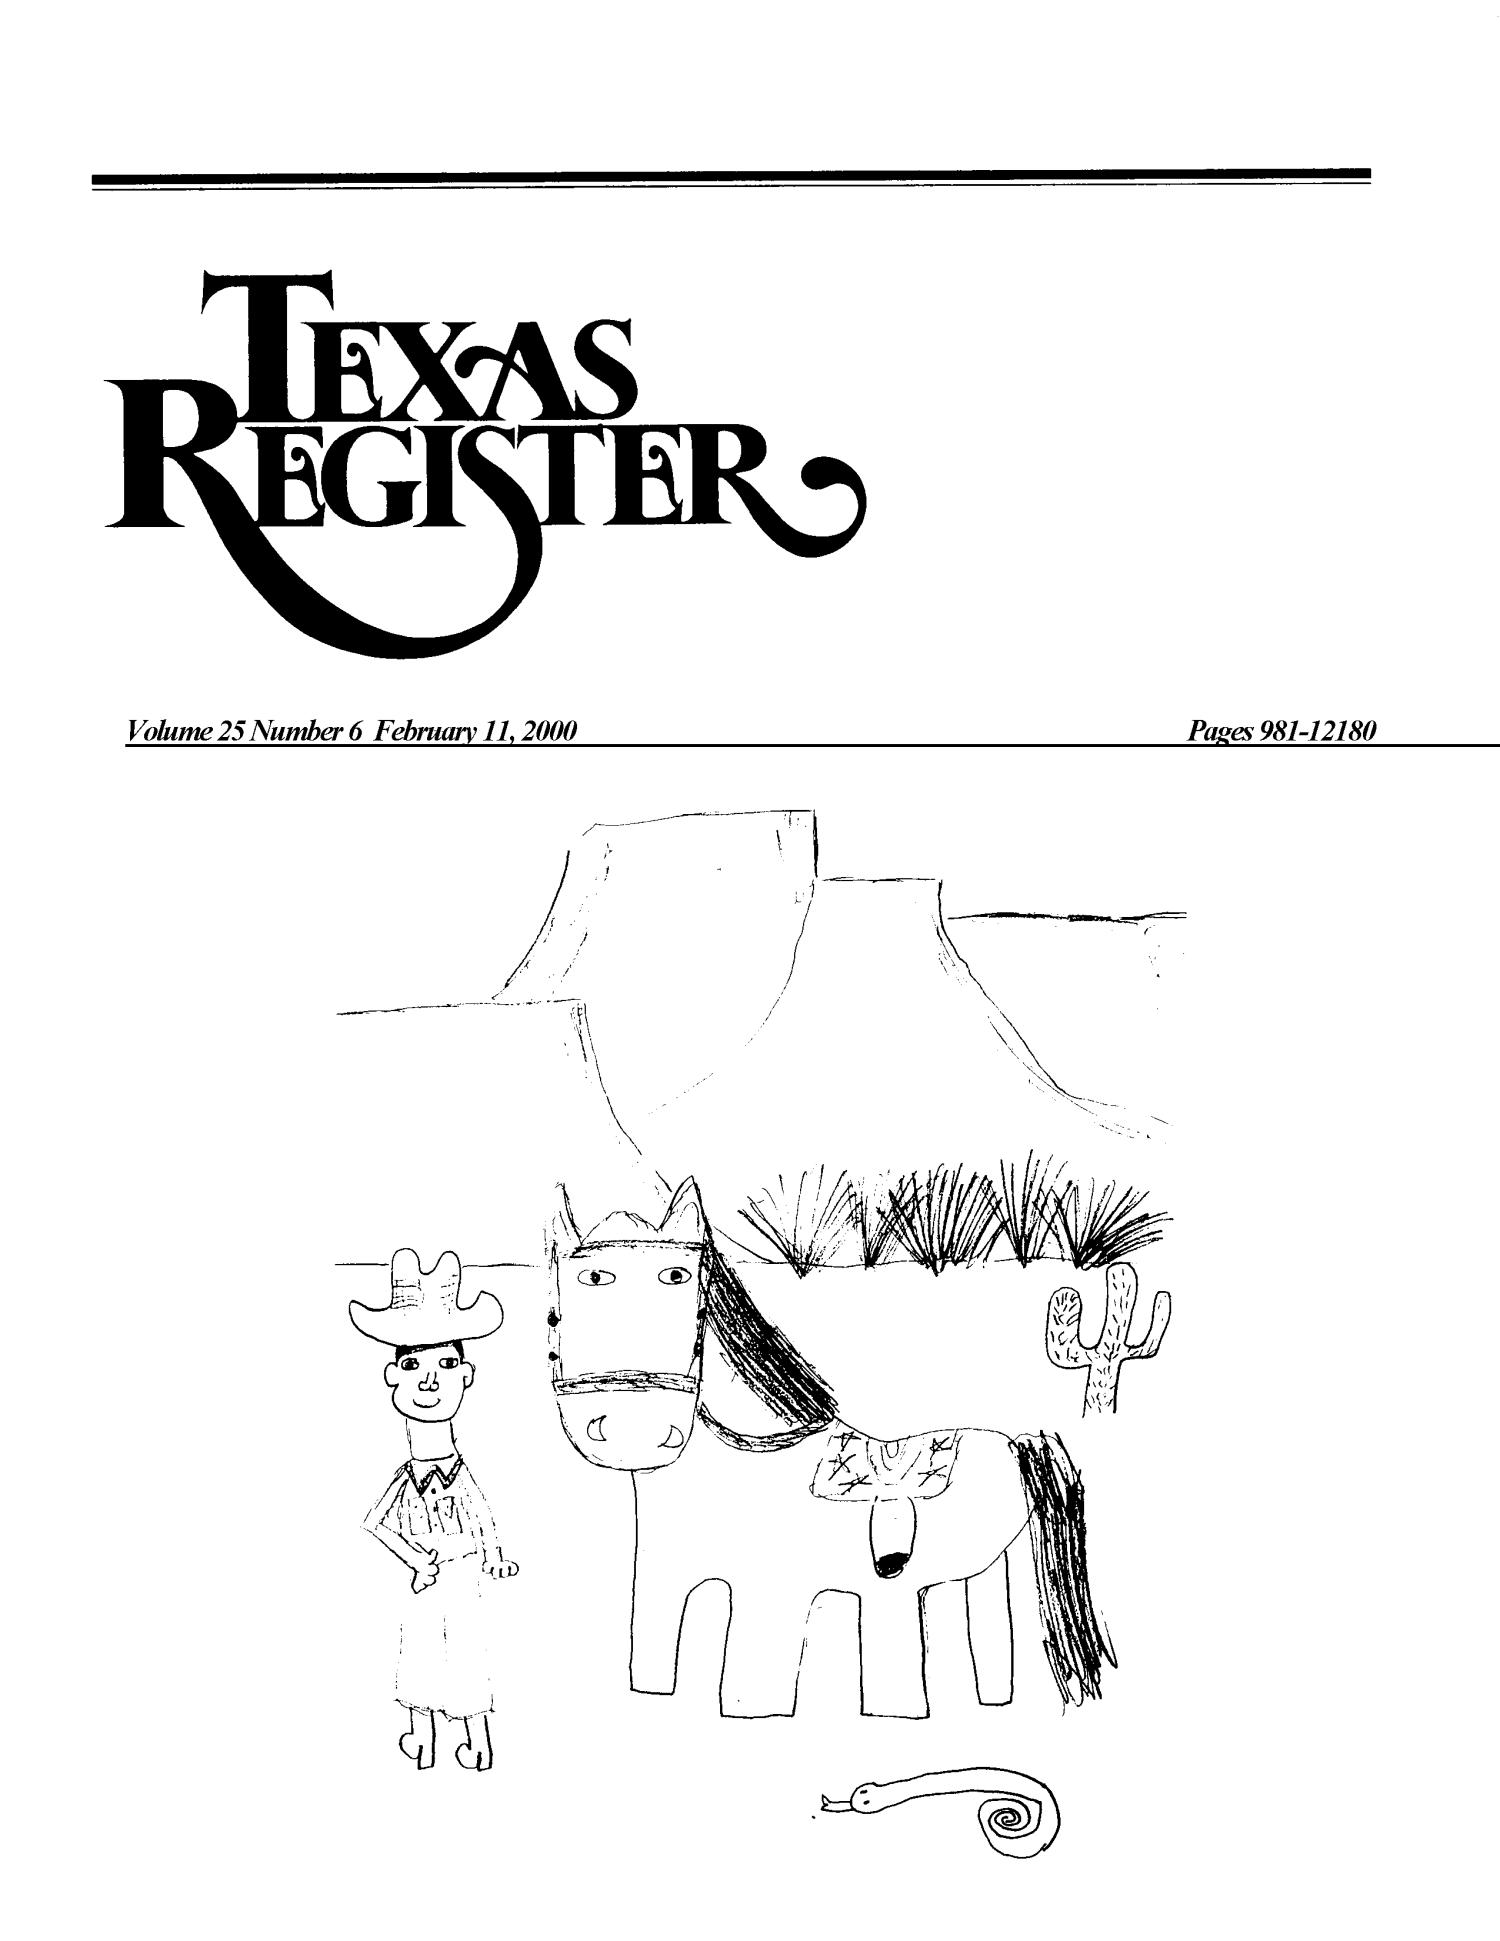 Texas Register, Volume 25, Number 6, Pages 981-1218